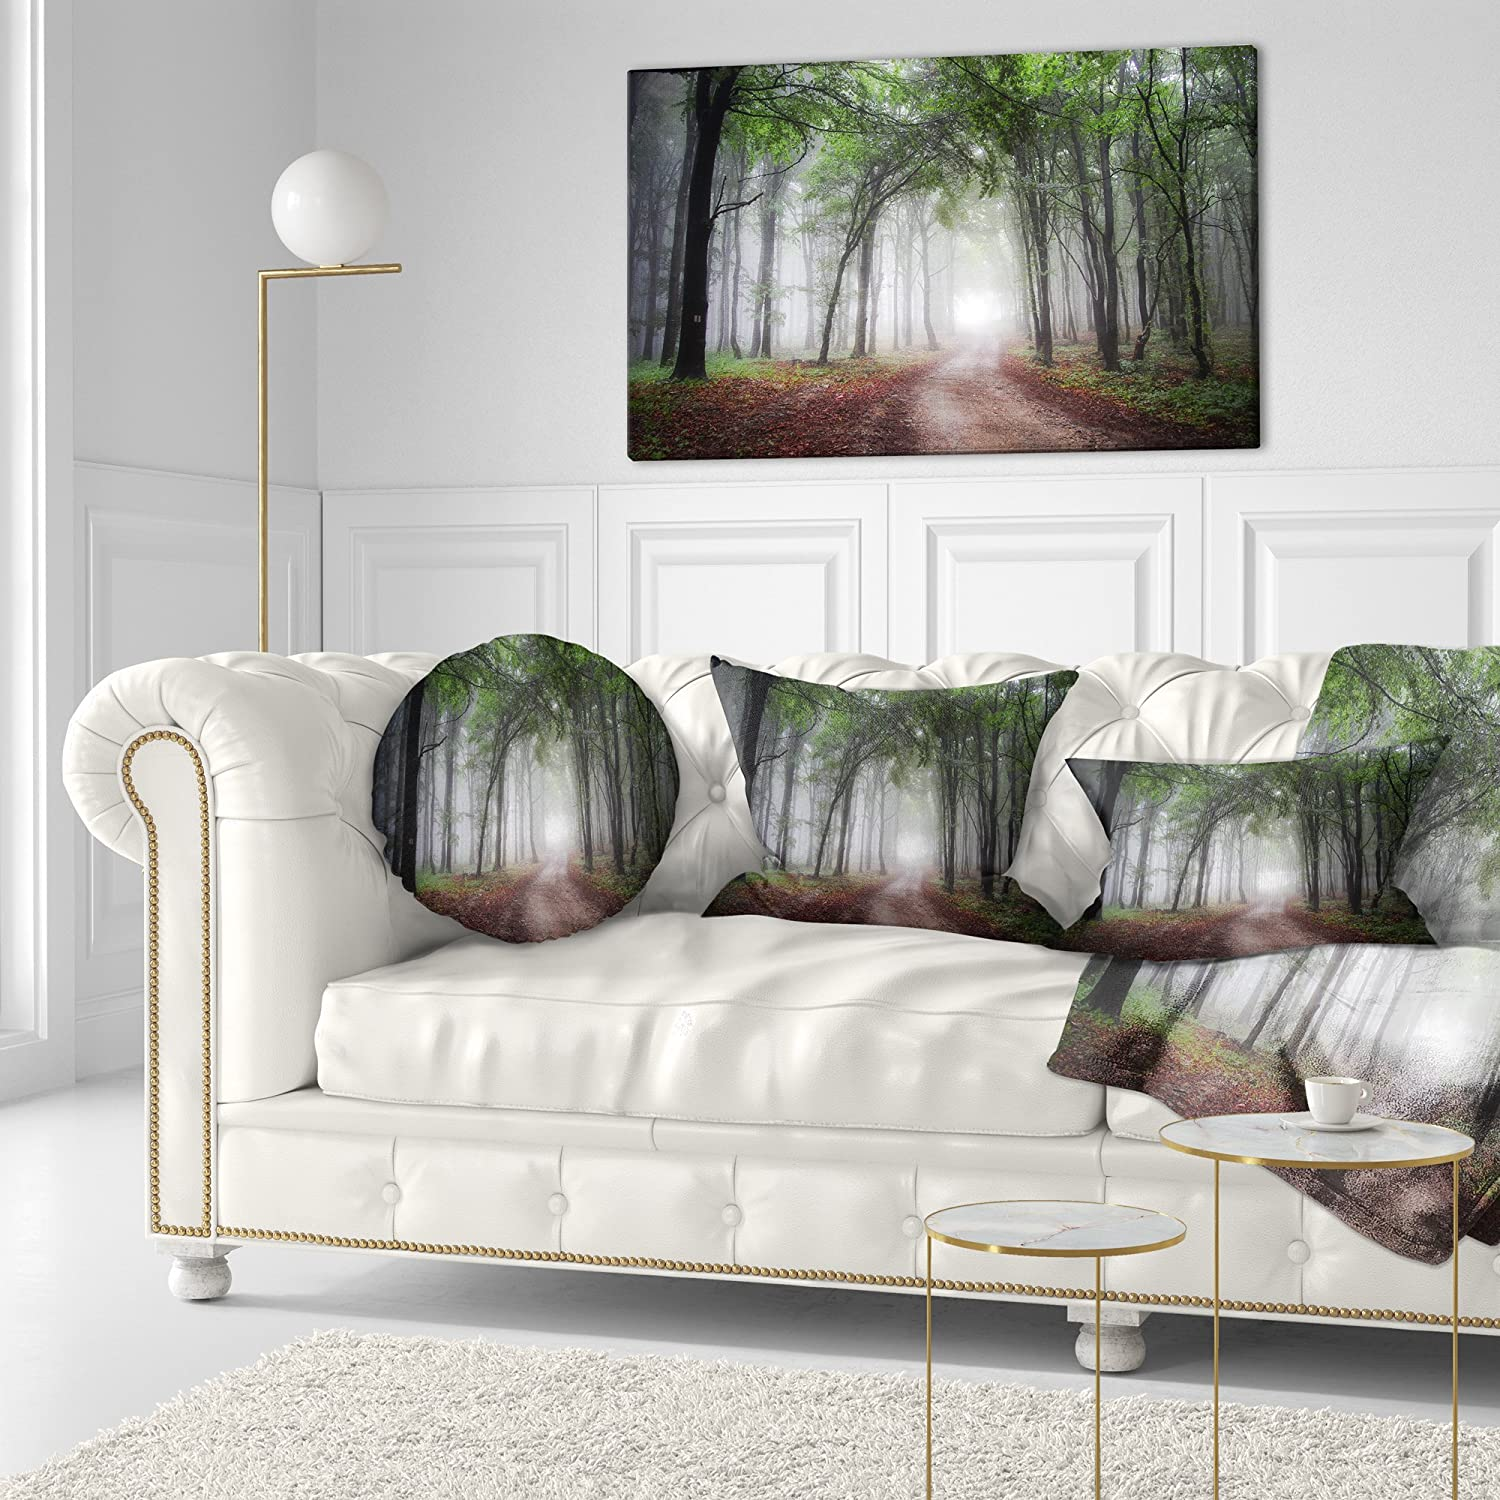 Sofa Throw Pillow 20 Insert Printed On Both Side Designart CU9783-20-20-C Light Through Green Fall Forest Landscape Photography Round Cushion Cover for Living Room